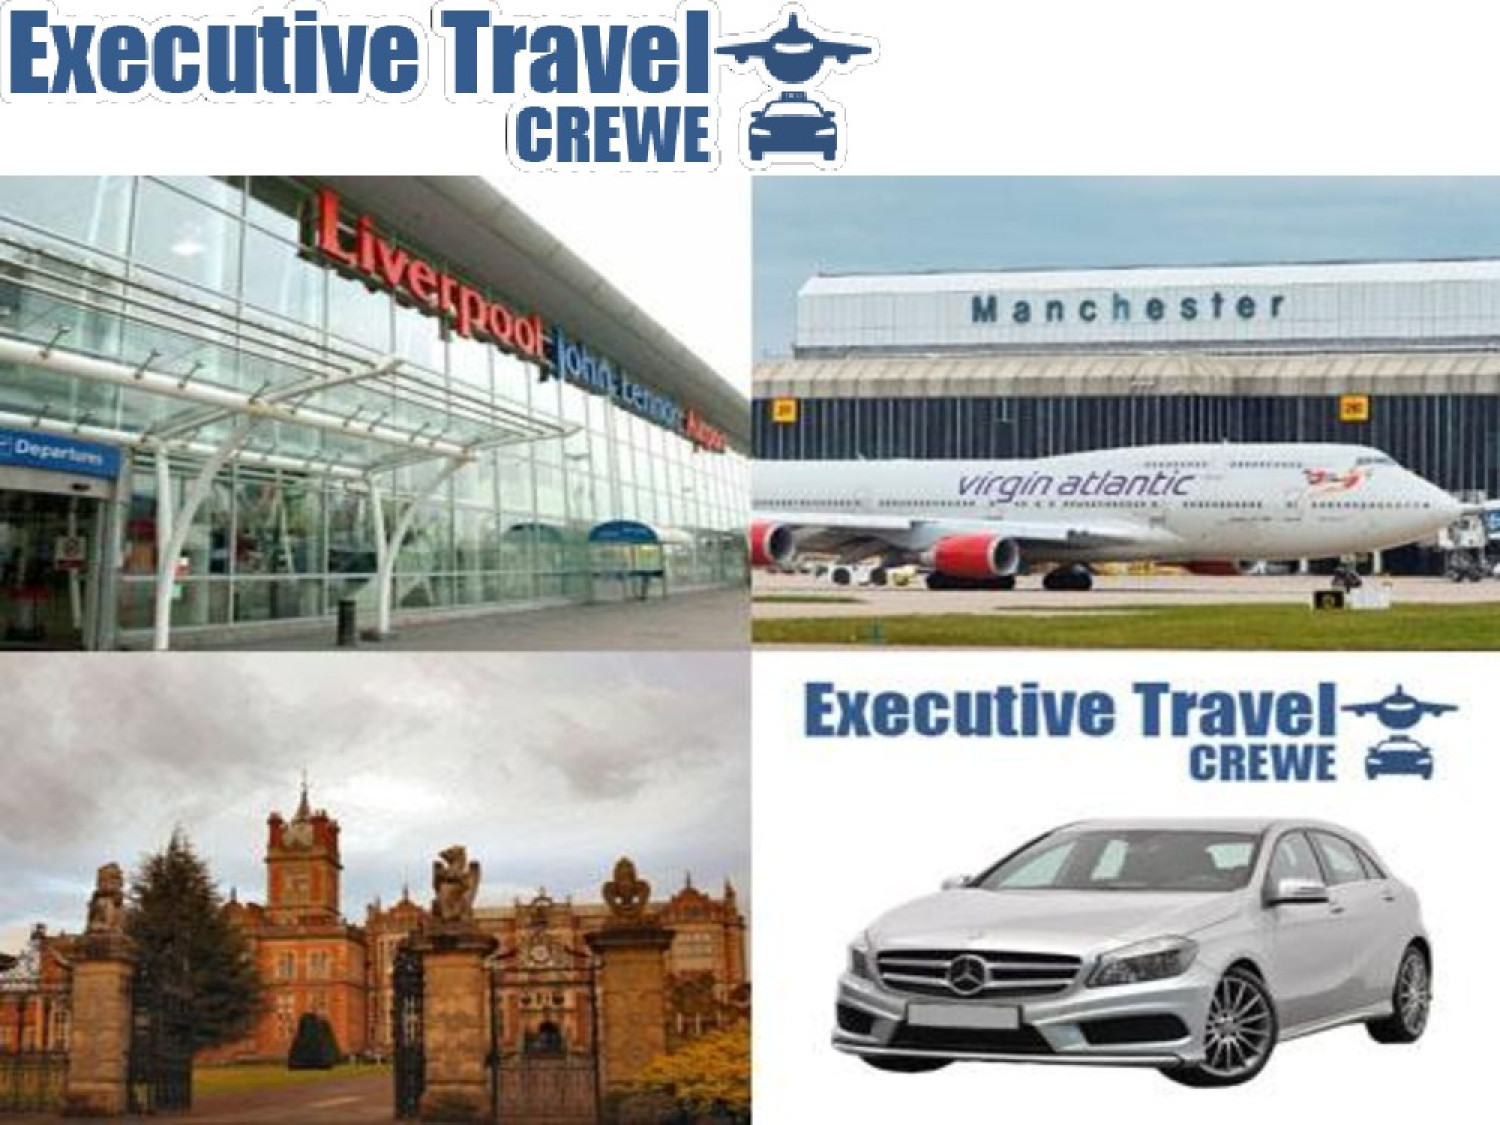 Best Taxi Services Manchester Airport - Crewe Taxi Infographic